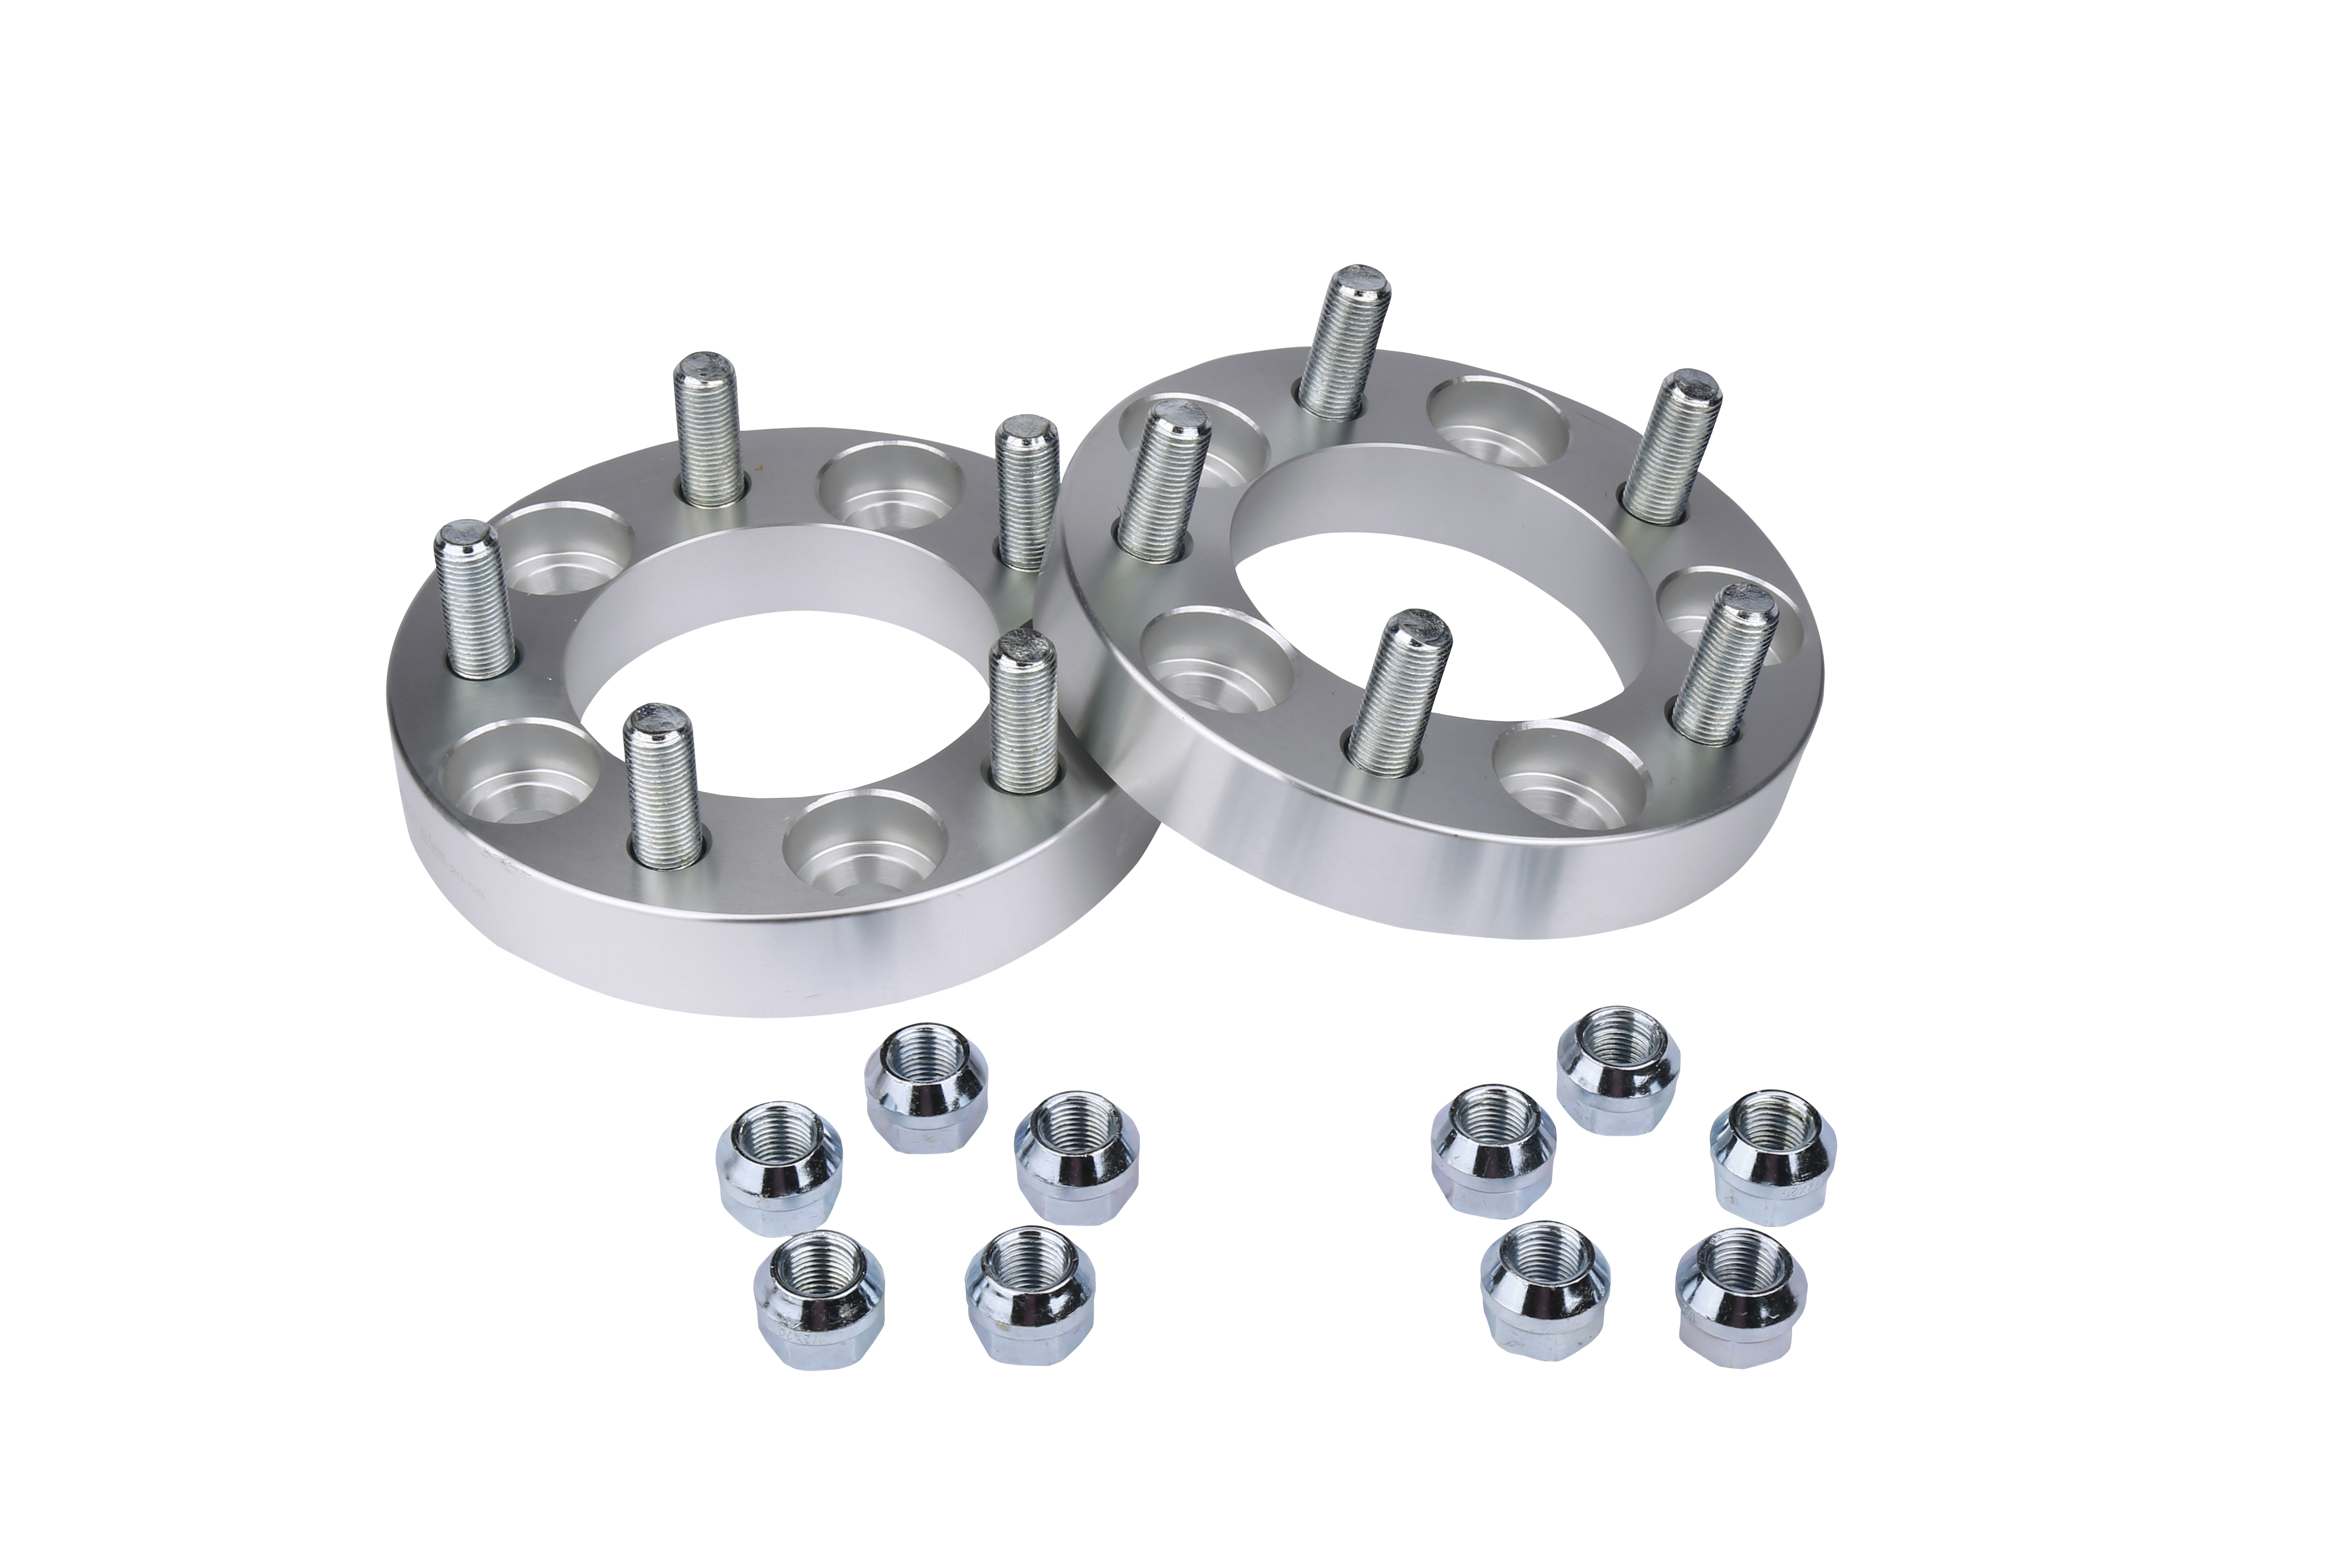 Wheel Spacer Set of 2-5x114.3mm Pattern - Fits Ford and Jeep Image